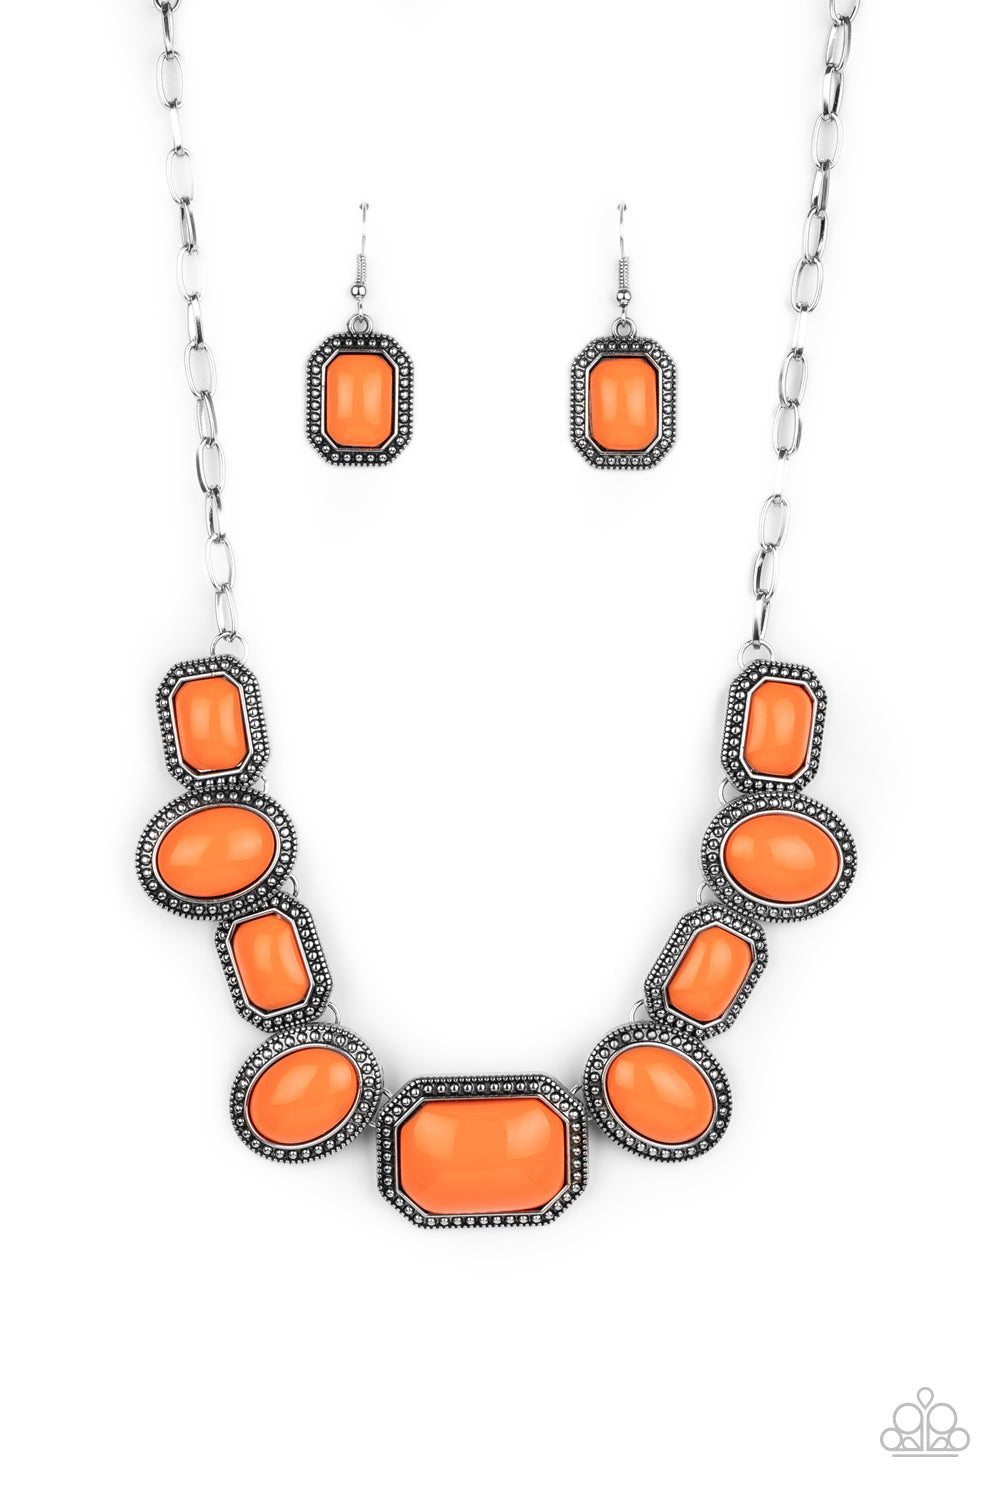 five-dollar-jewelry-lets-get-loud-orange-necklace-paparazzi-accessories